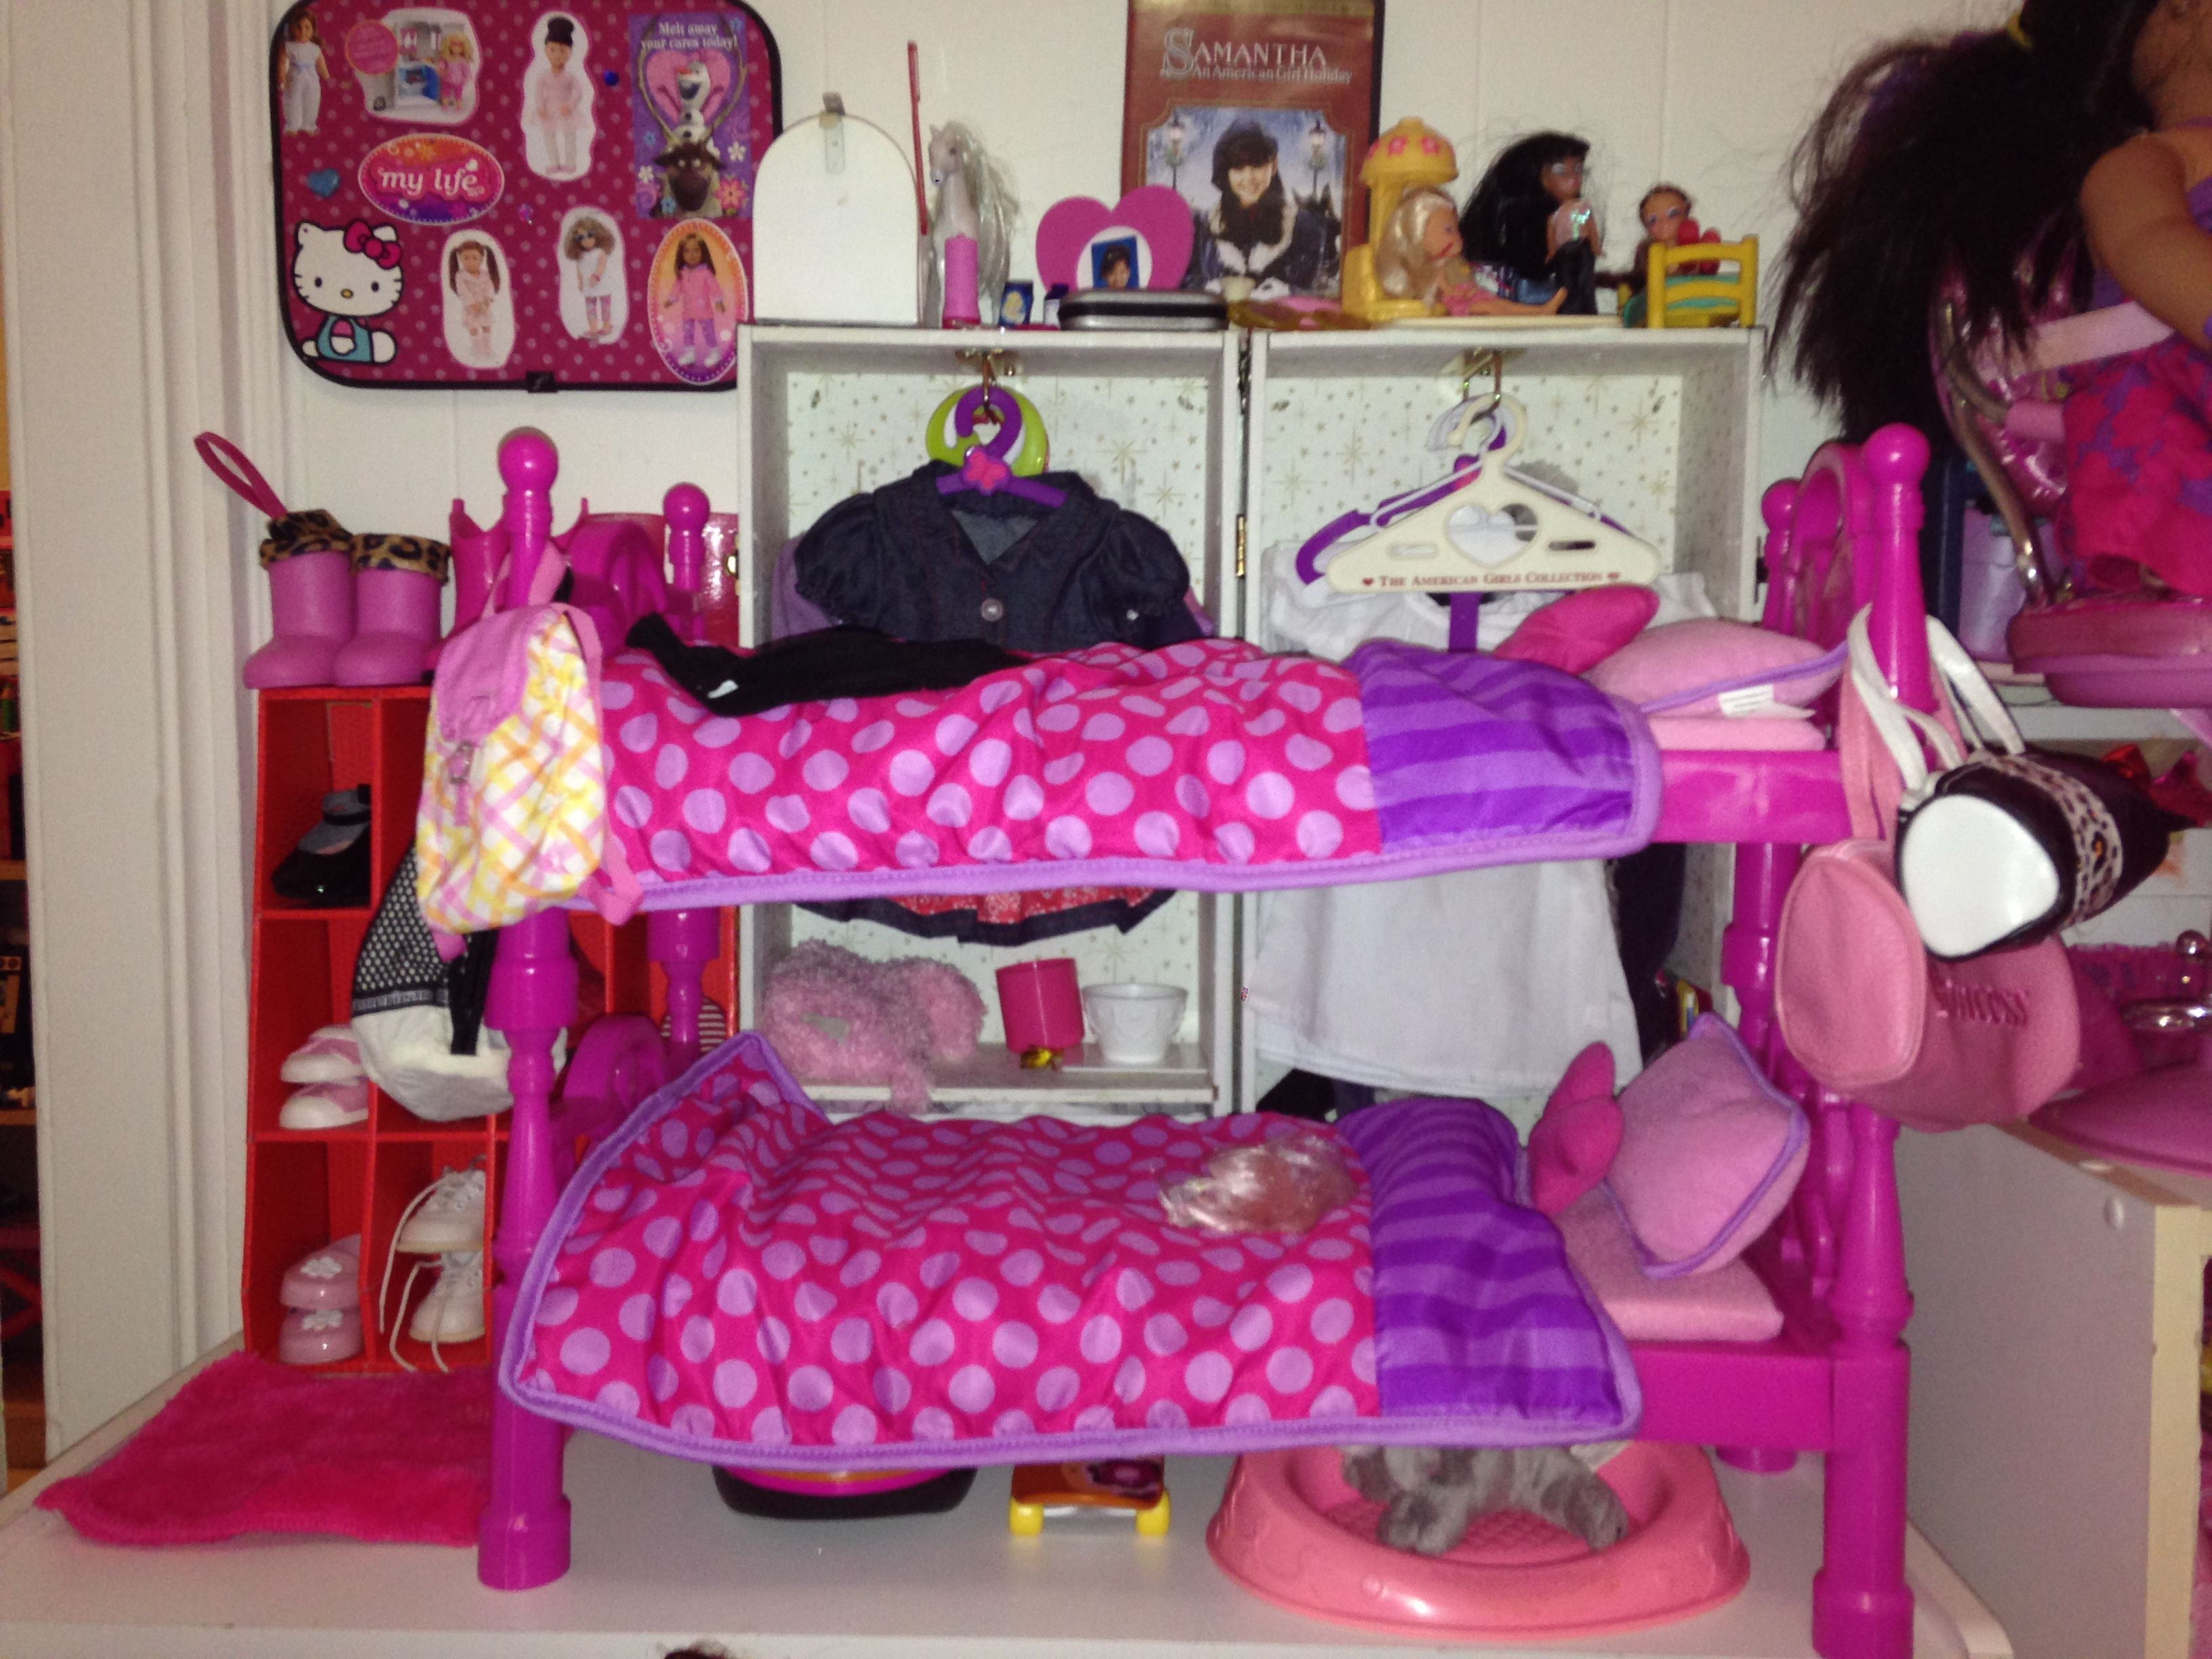 Bedroom 1 with the pink Walmart My Life As bunk beds